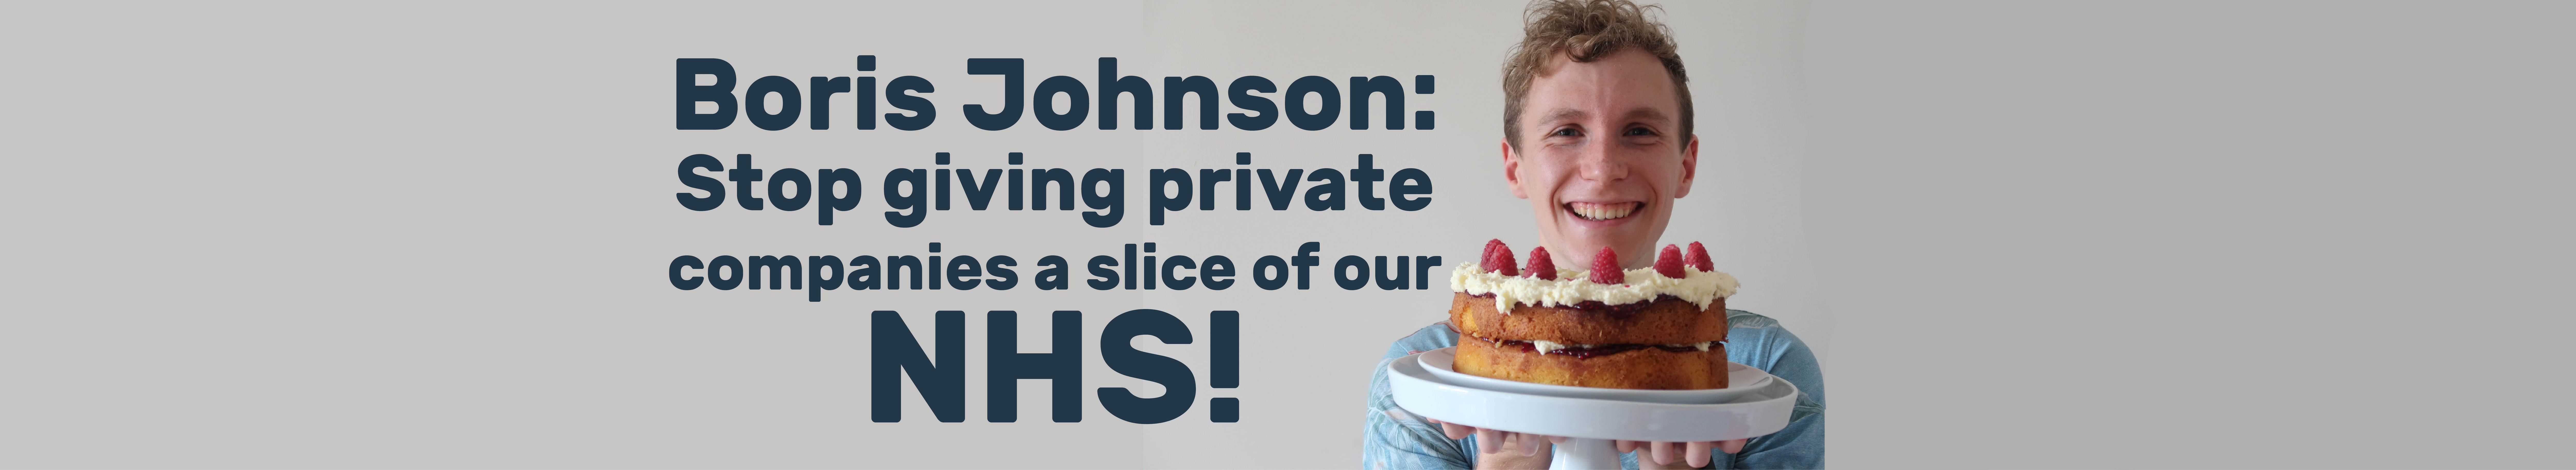 "Image of a person holding a cake with text reading ""Boris Johnson: Stop giving private companies a slice of our NHS!"""